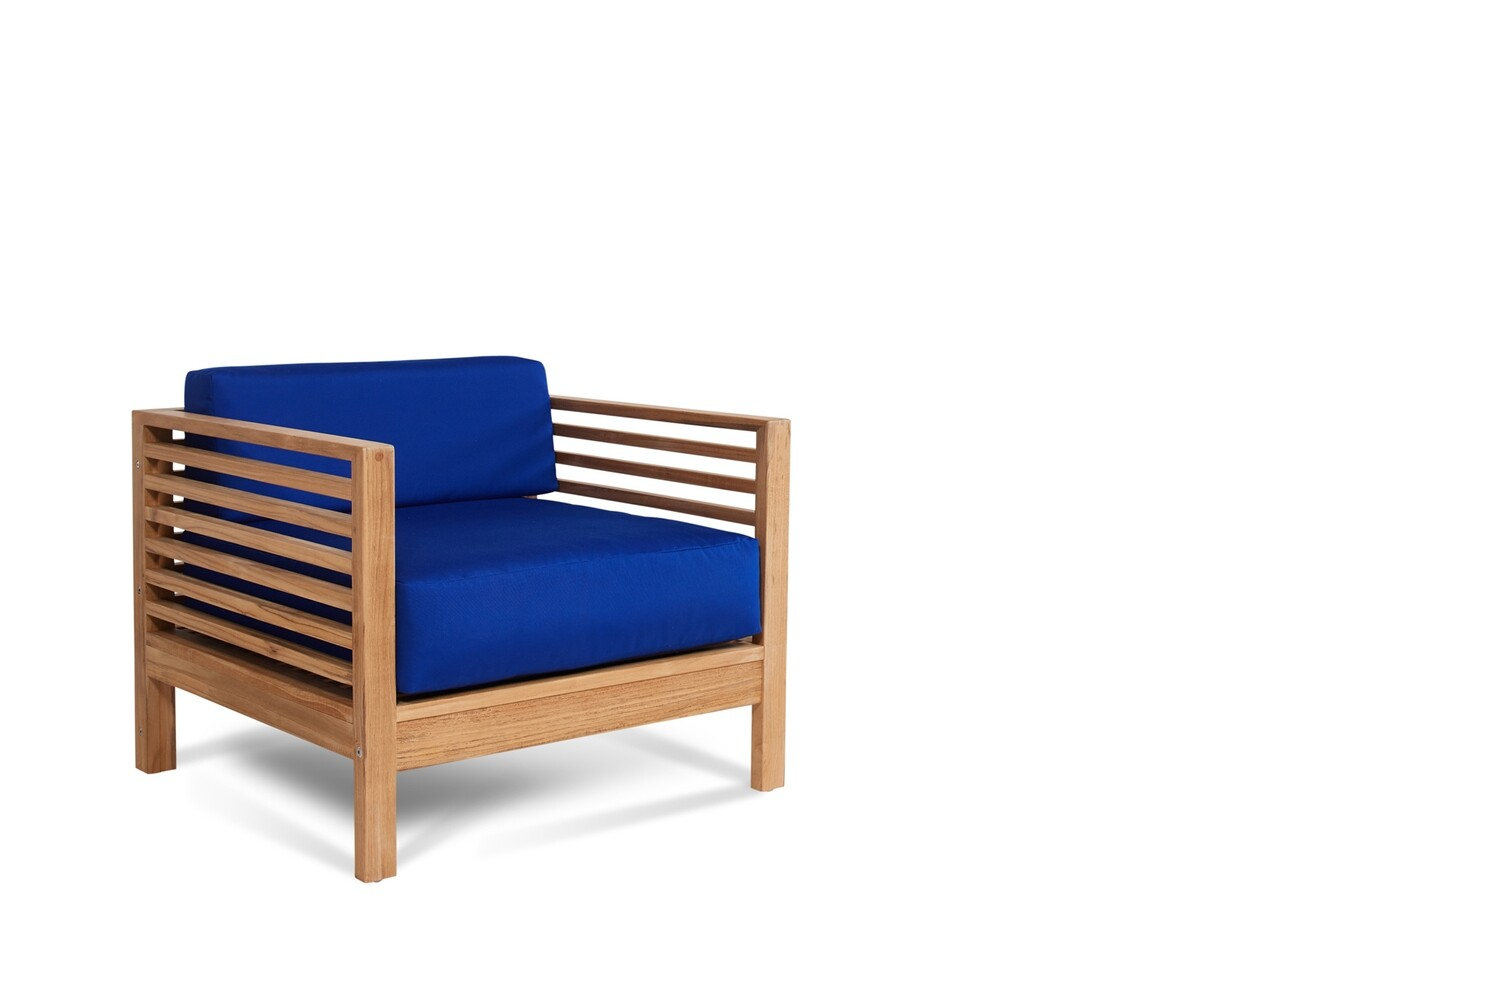 Summer Outdoor Teak Club Chair | Blue or White